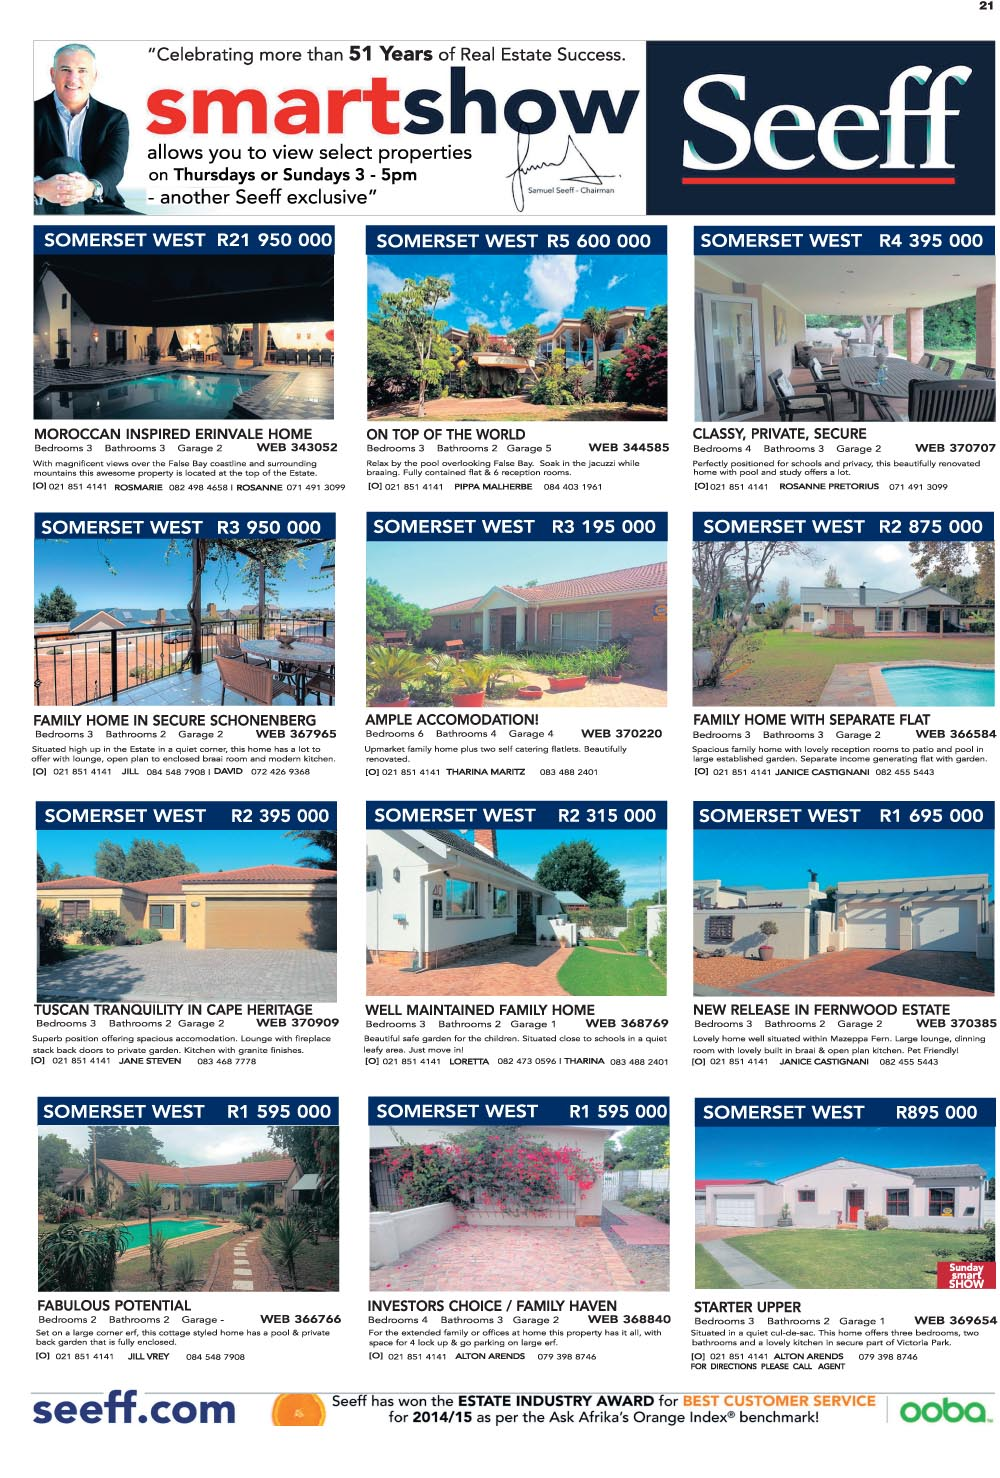 You are browsing images from the article: Property Selection December 02 2015